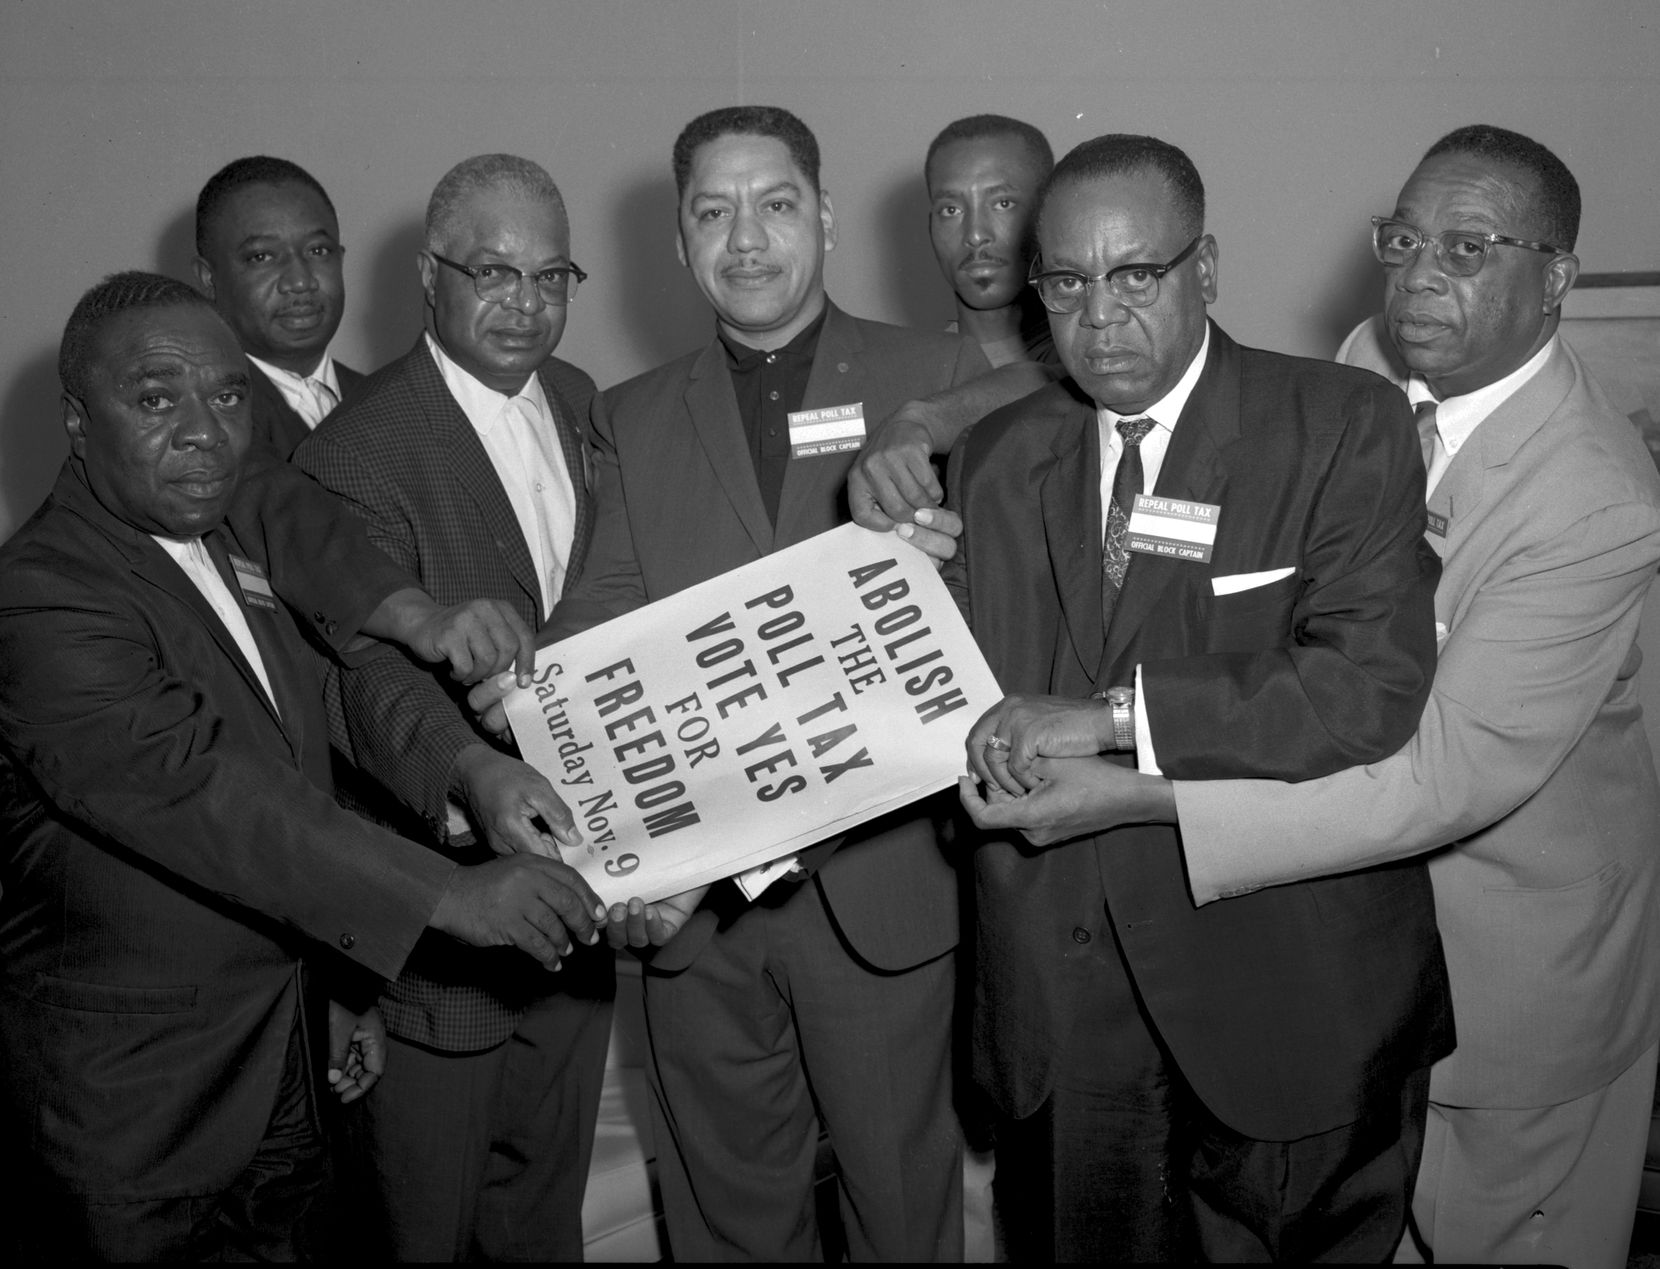 A. Maceo Smith (third from left), an Alpha Phi Alpha member, played a large role in the civil rights movement. Pictured from left with him are Walter R. McMillan, Roosevelt Johnson, Pancho Medrano, Harold E. Holly, the Rev. G.T. Thomas, and R.R. Revis, all of whom fought against the poll tax in 1963.